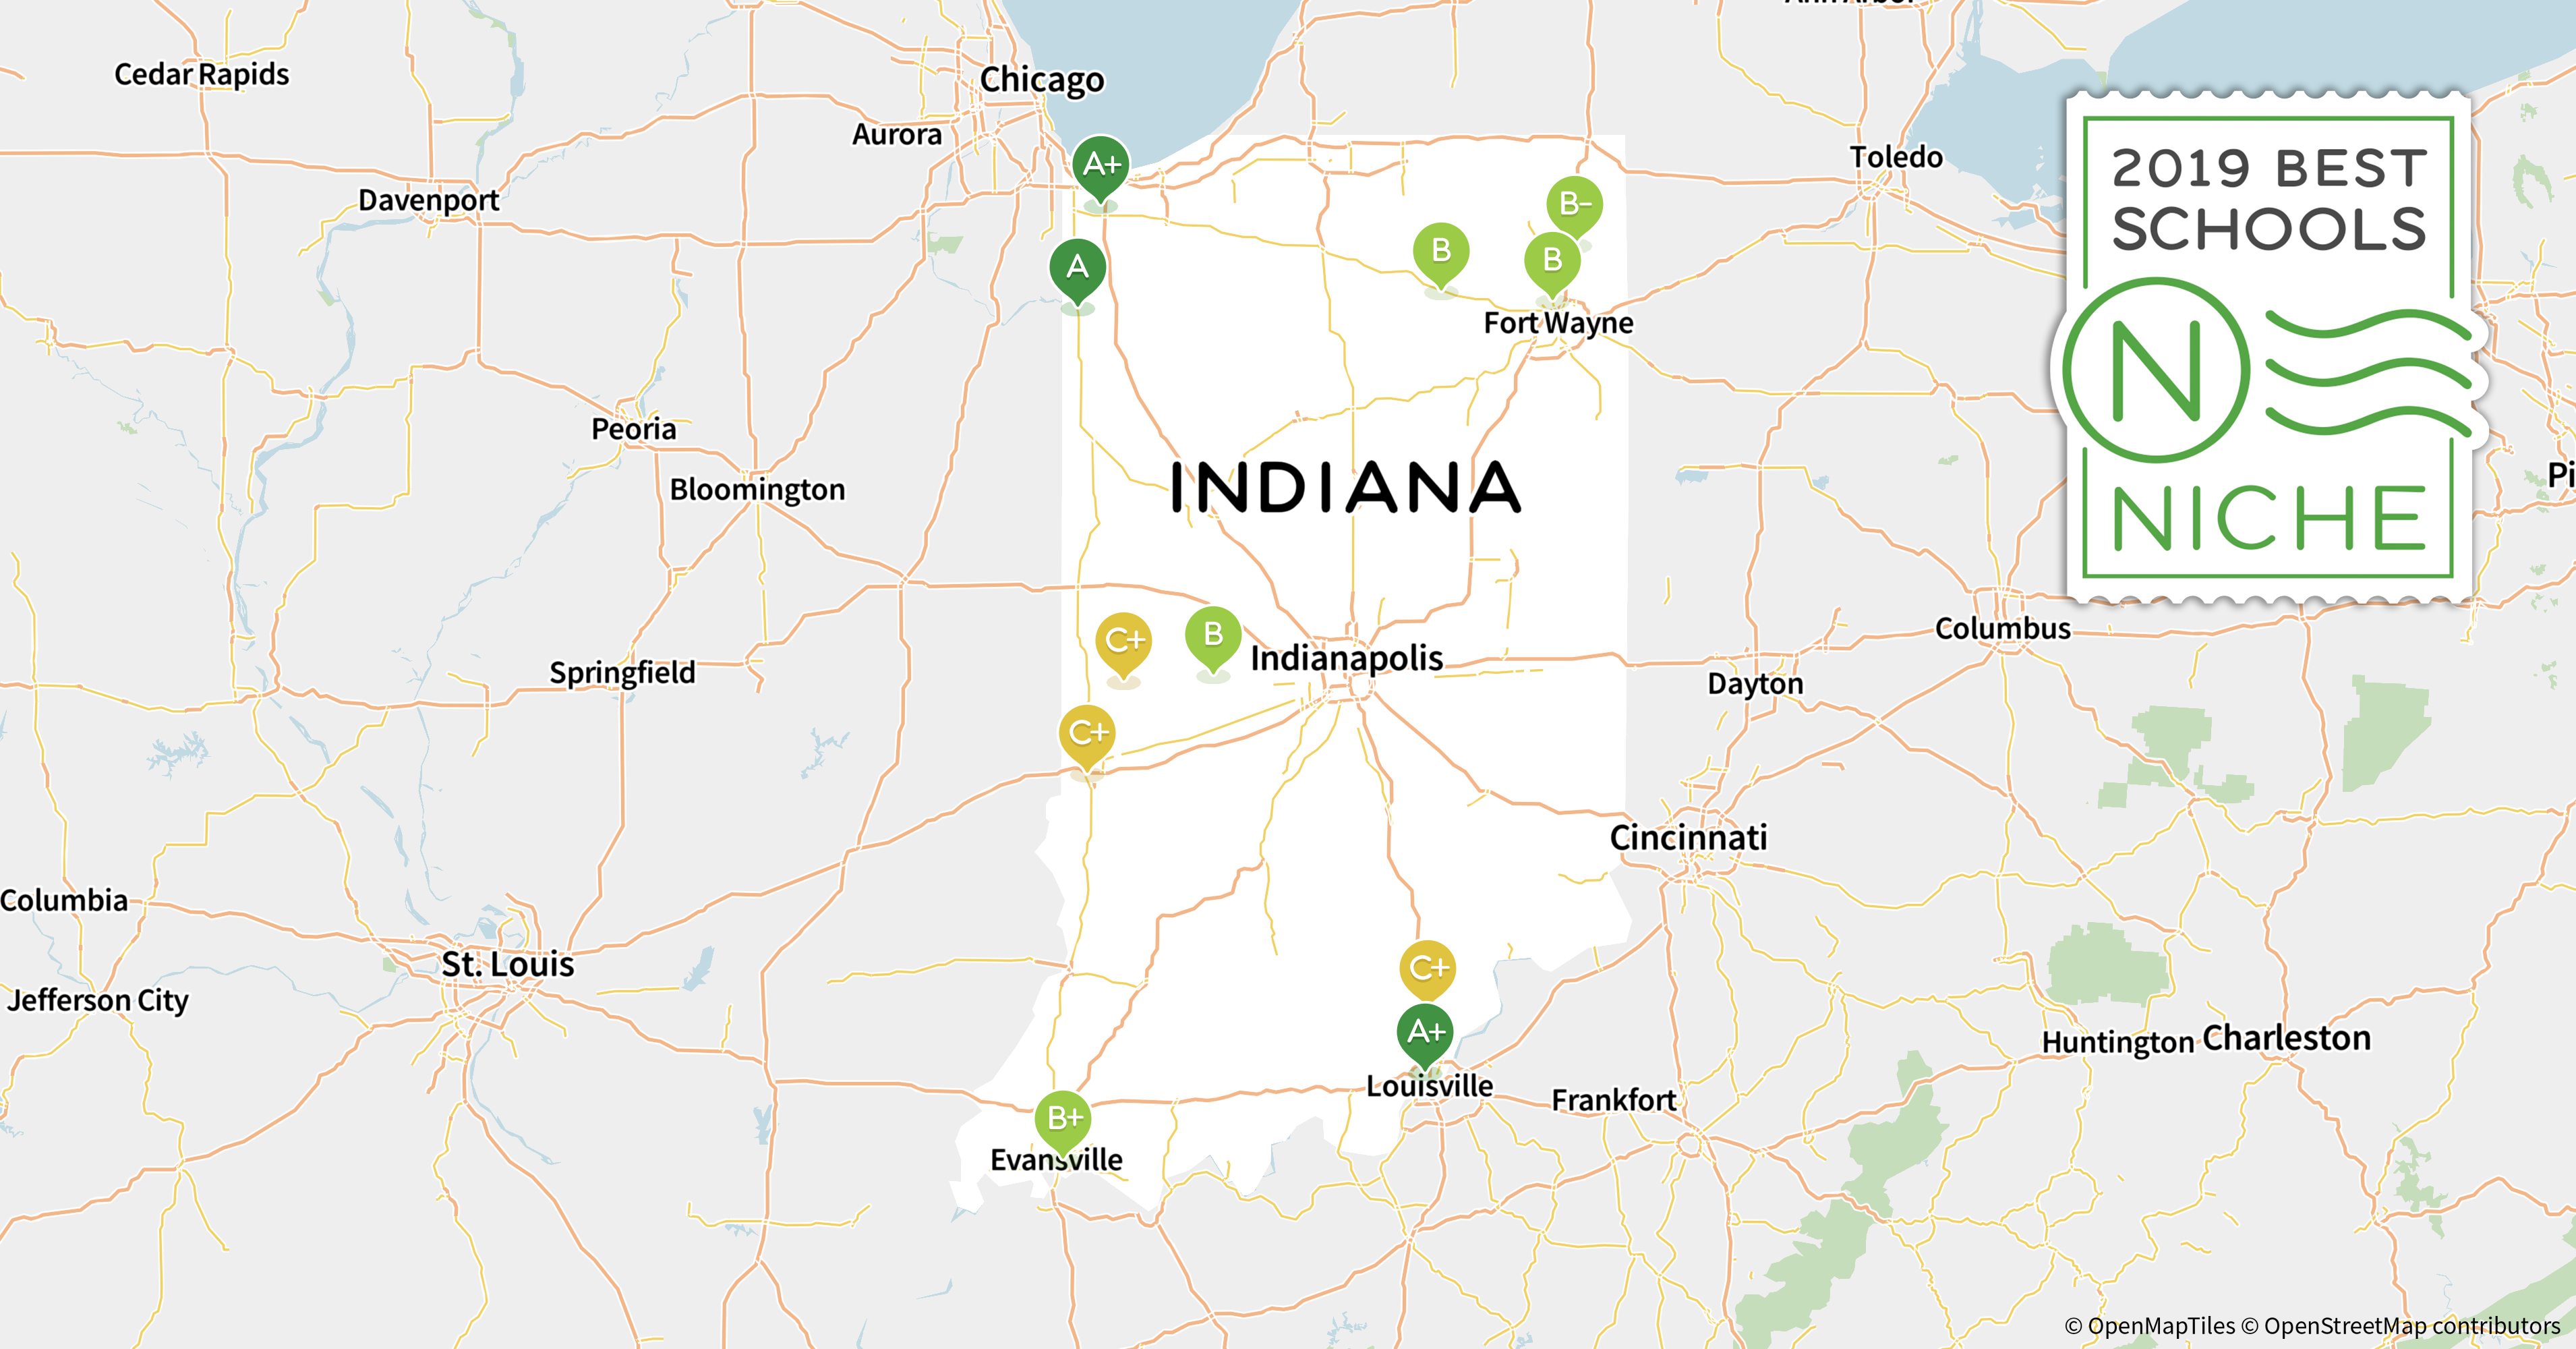 Hamilton Lake Indiana Map.2019 Best School Districts In Indiana Niche